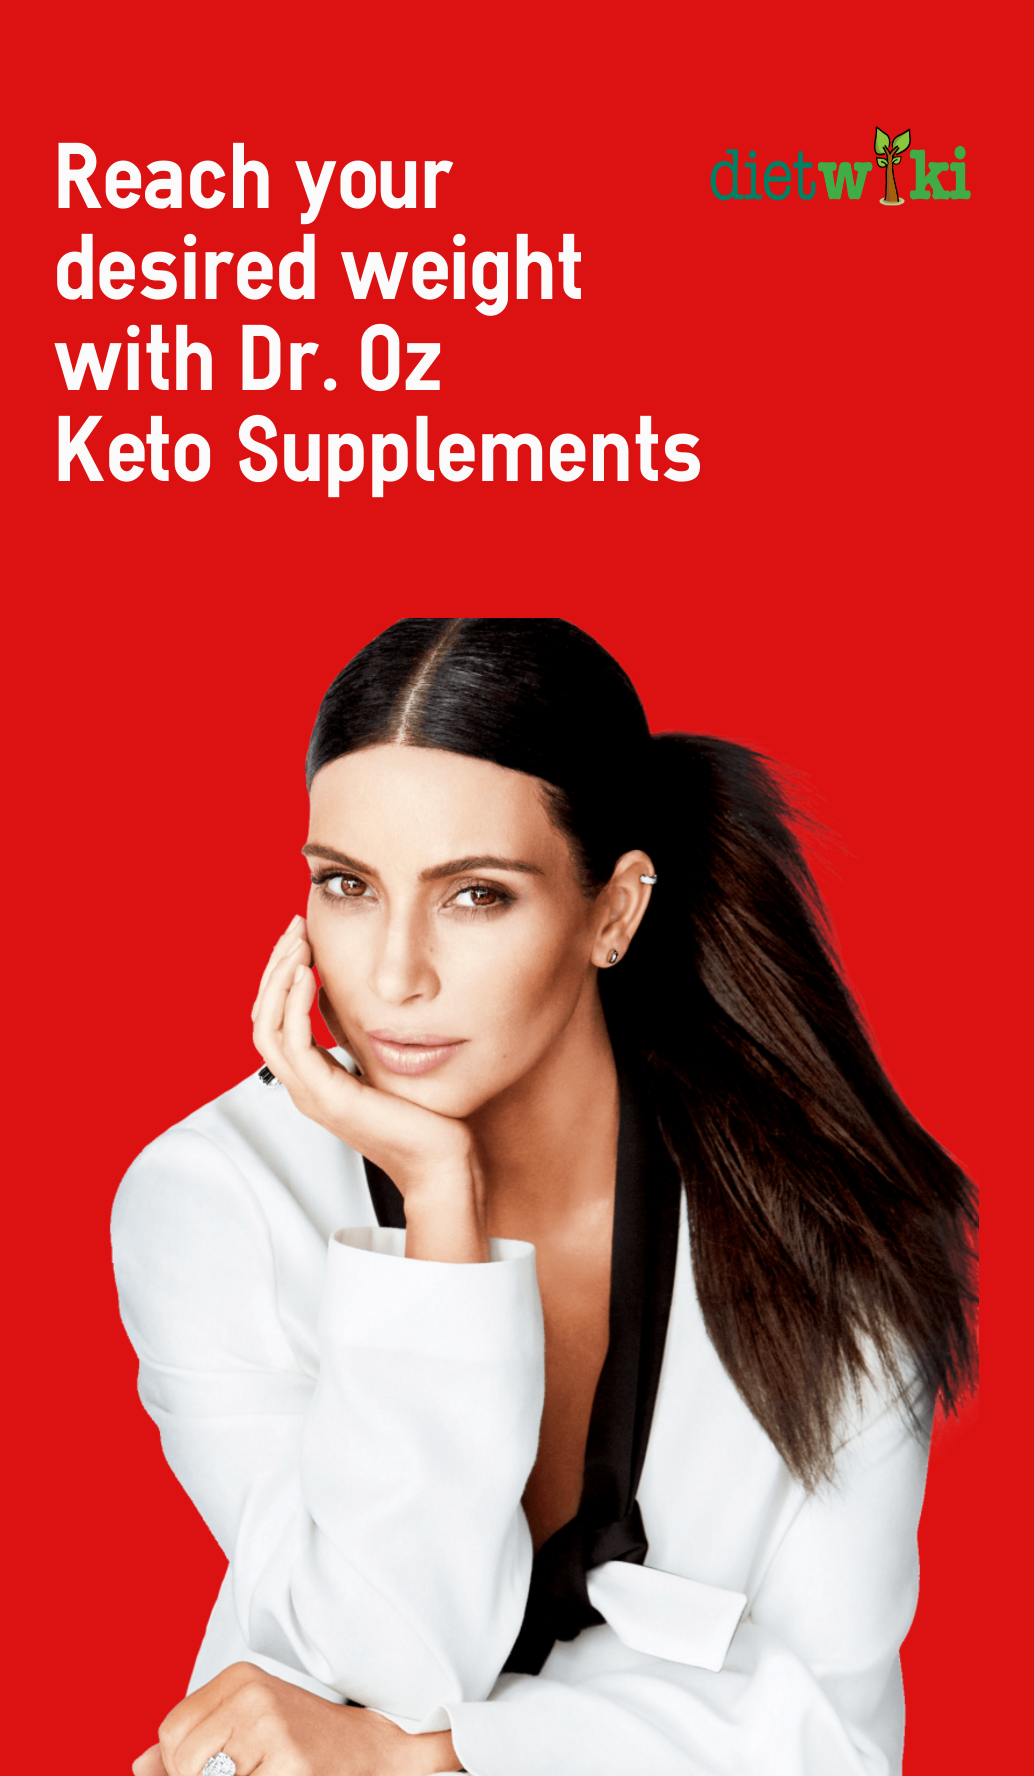 Dr. Oz Keto Supplements In 2020